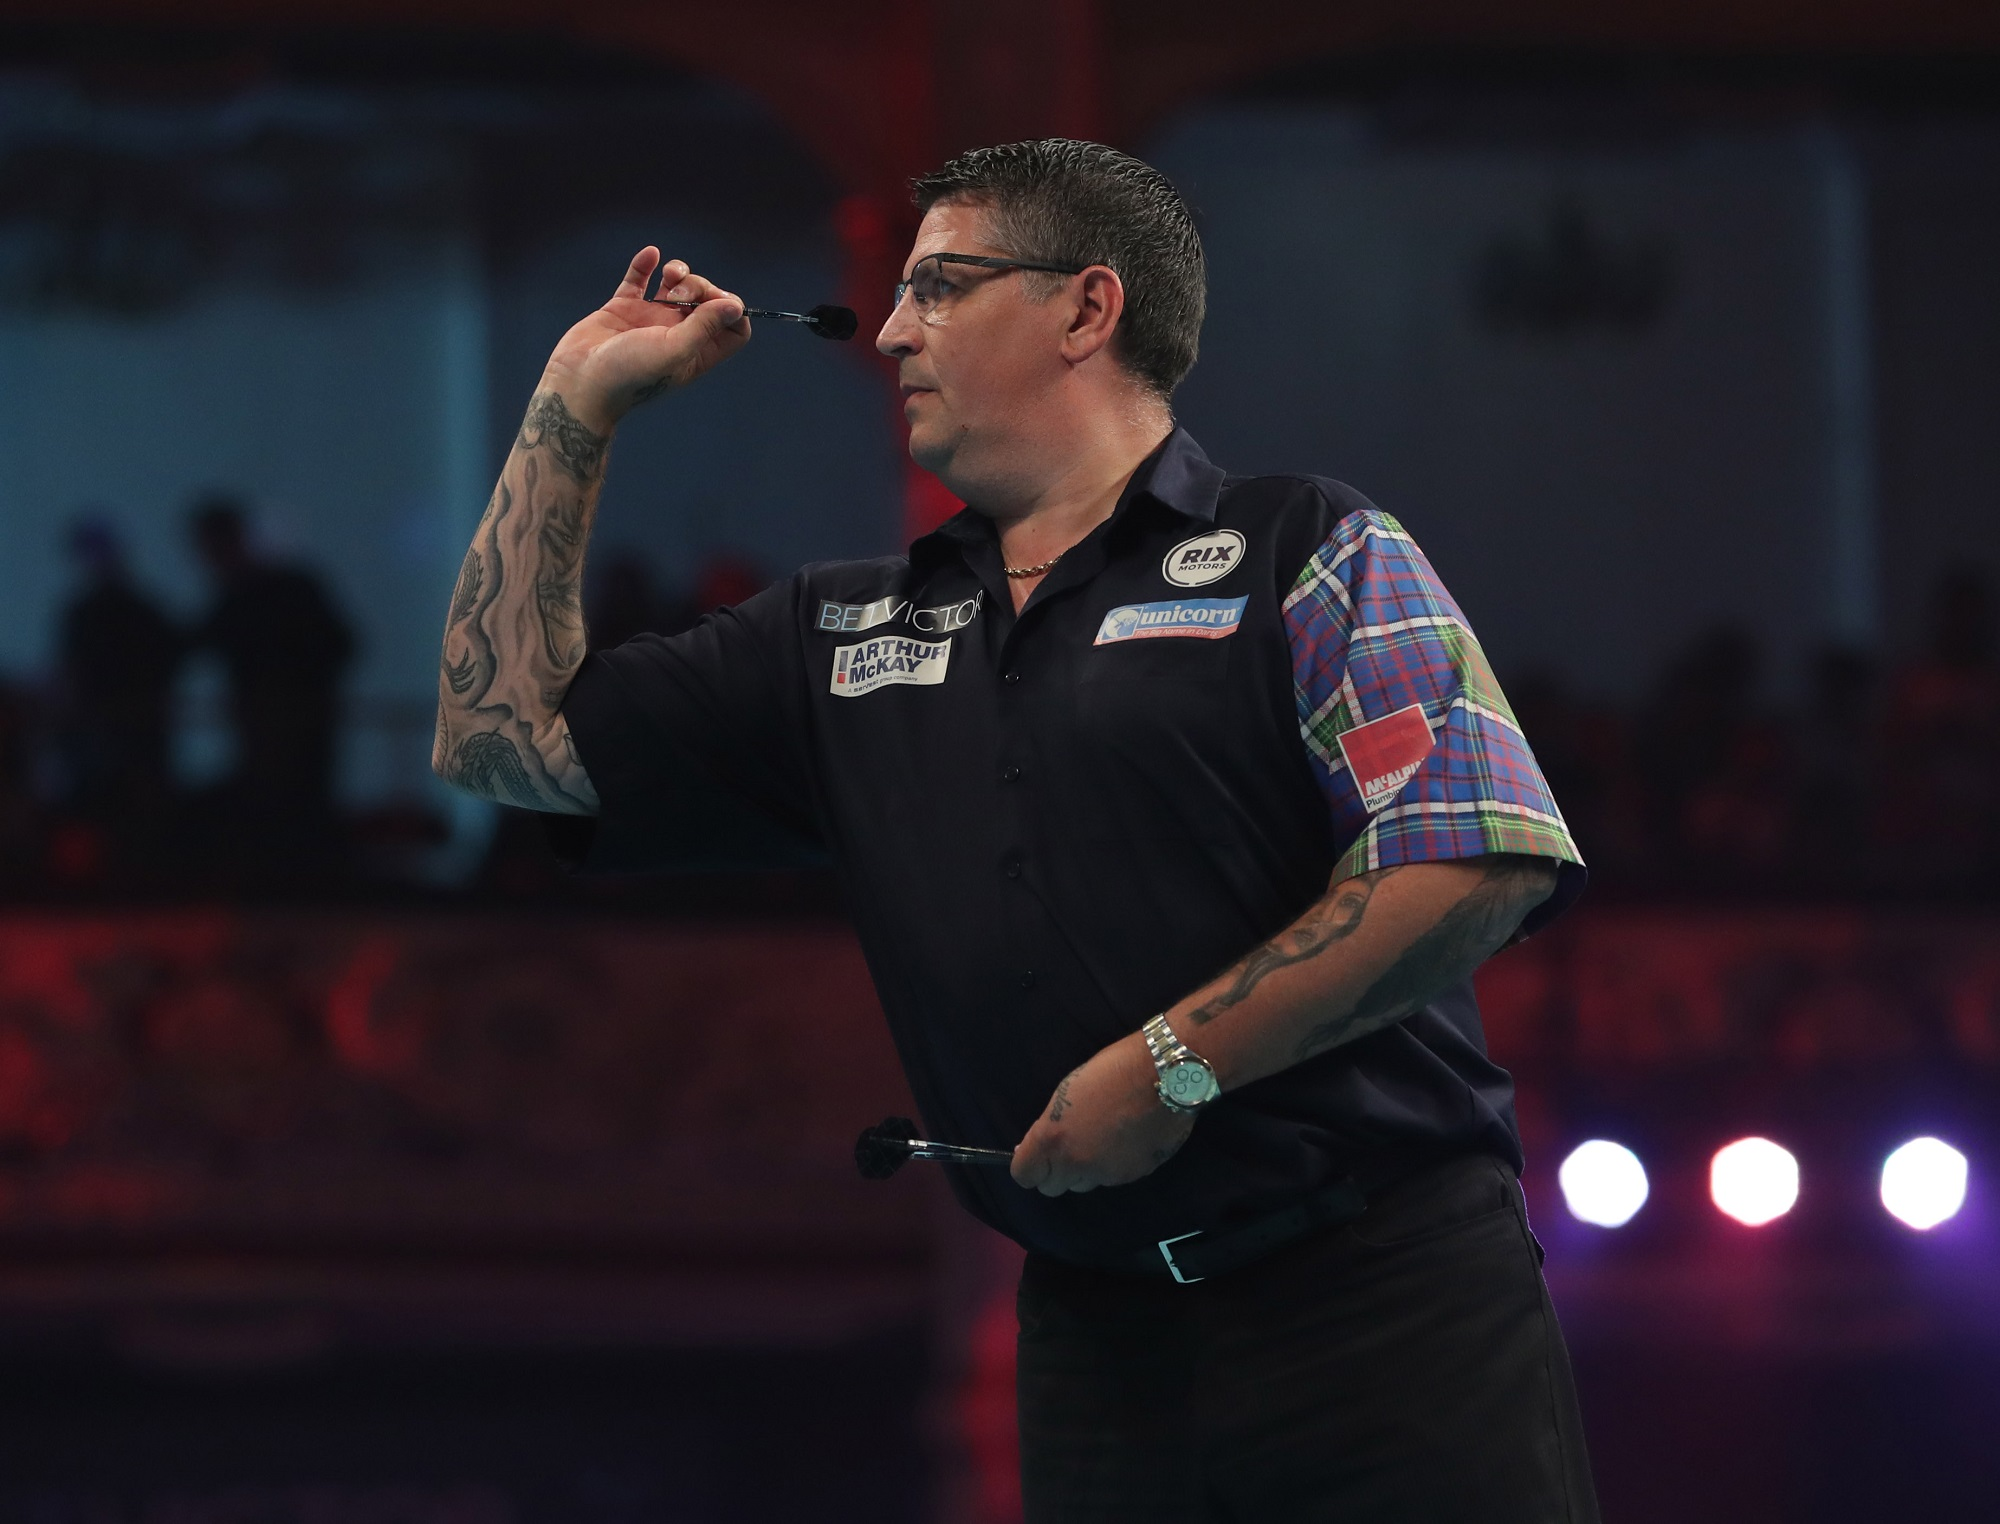 Photo of Gary Anderson by Lawrence Lustig/PDC